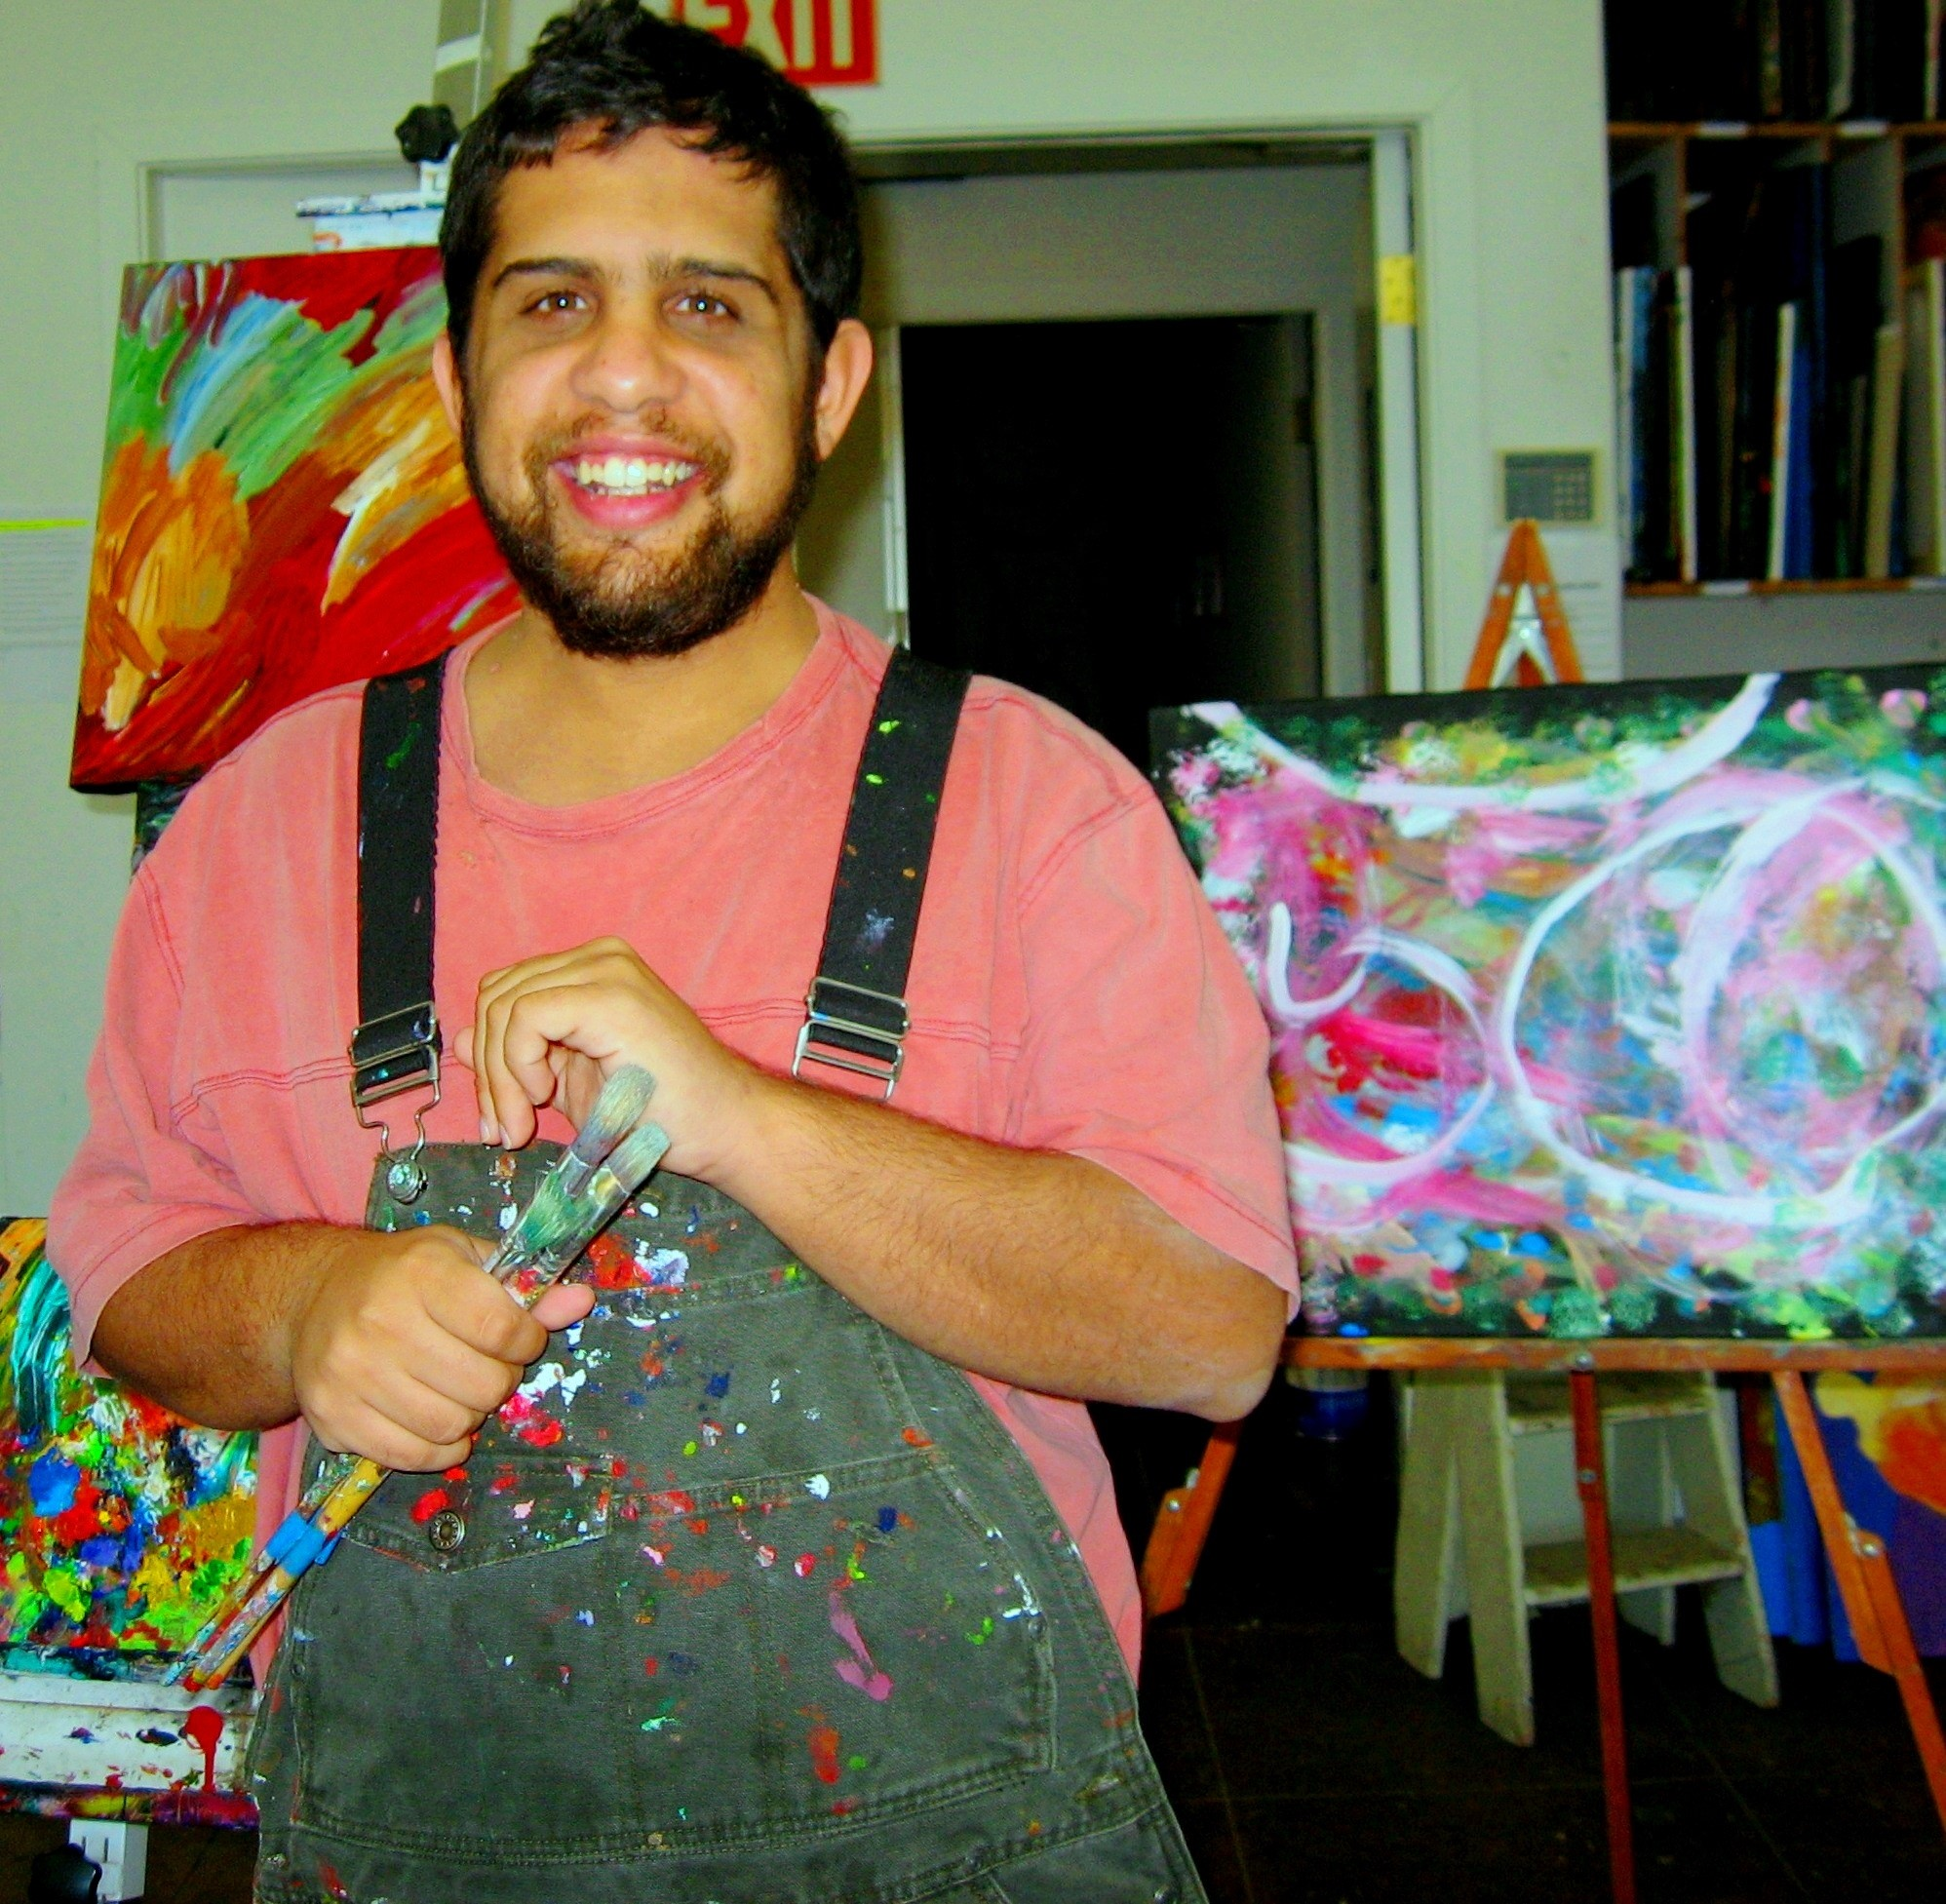 A man poses with paint brushes in front of his artworks.